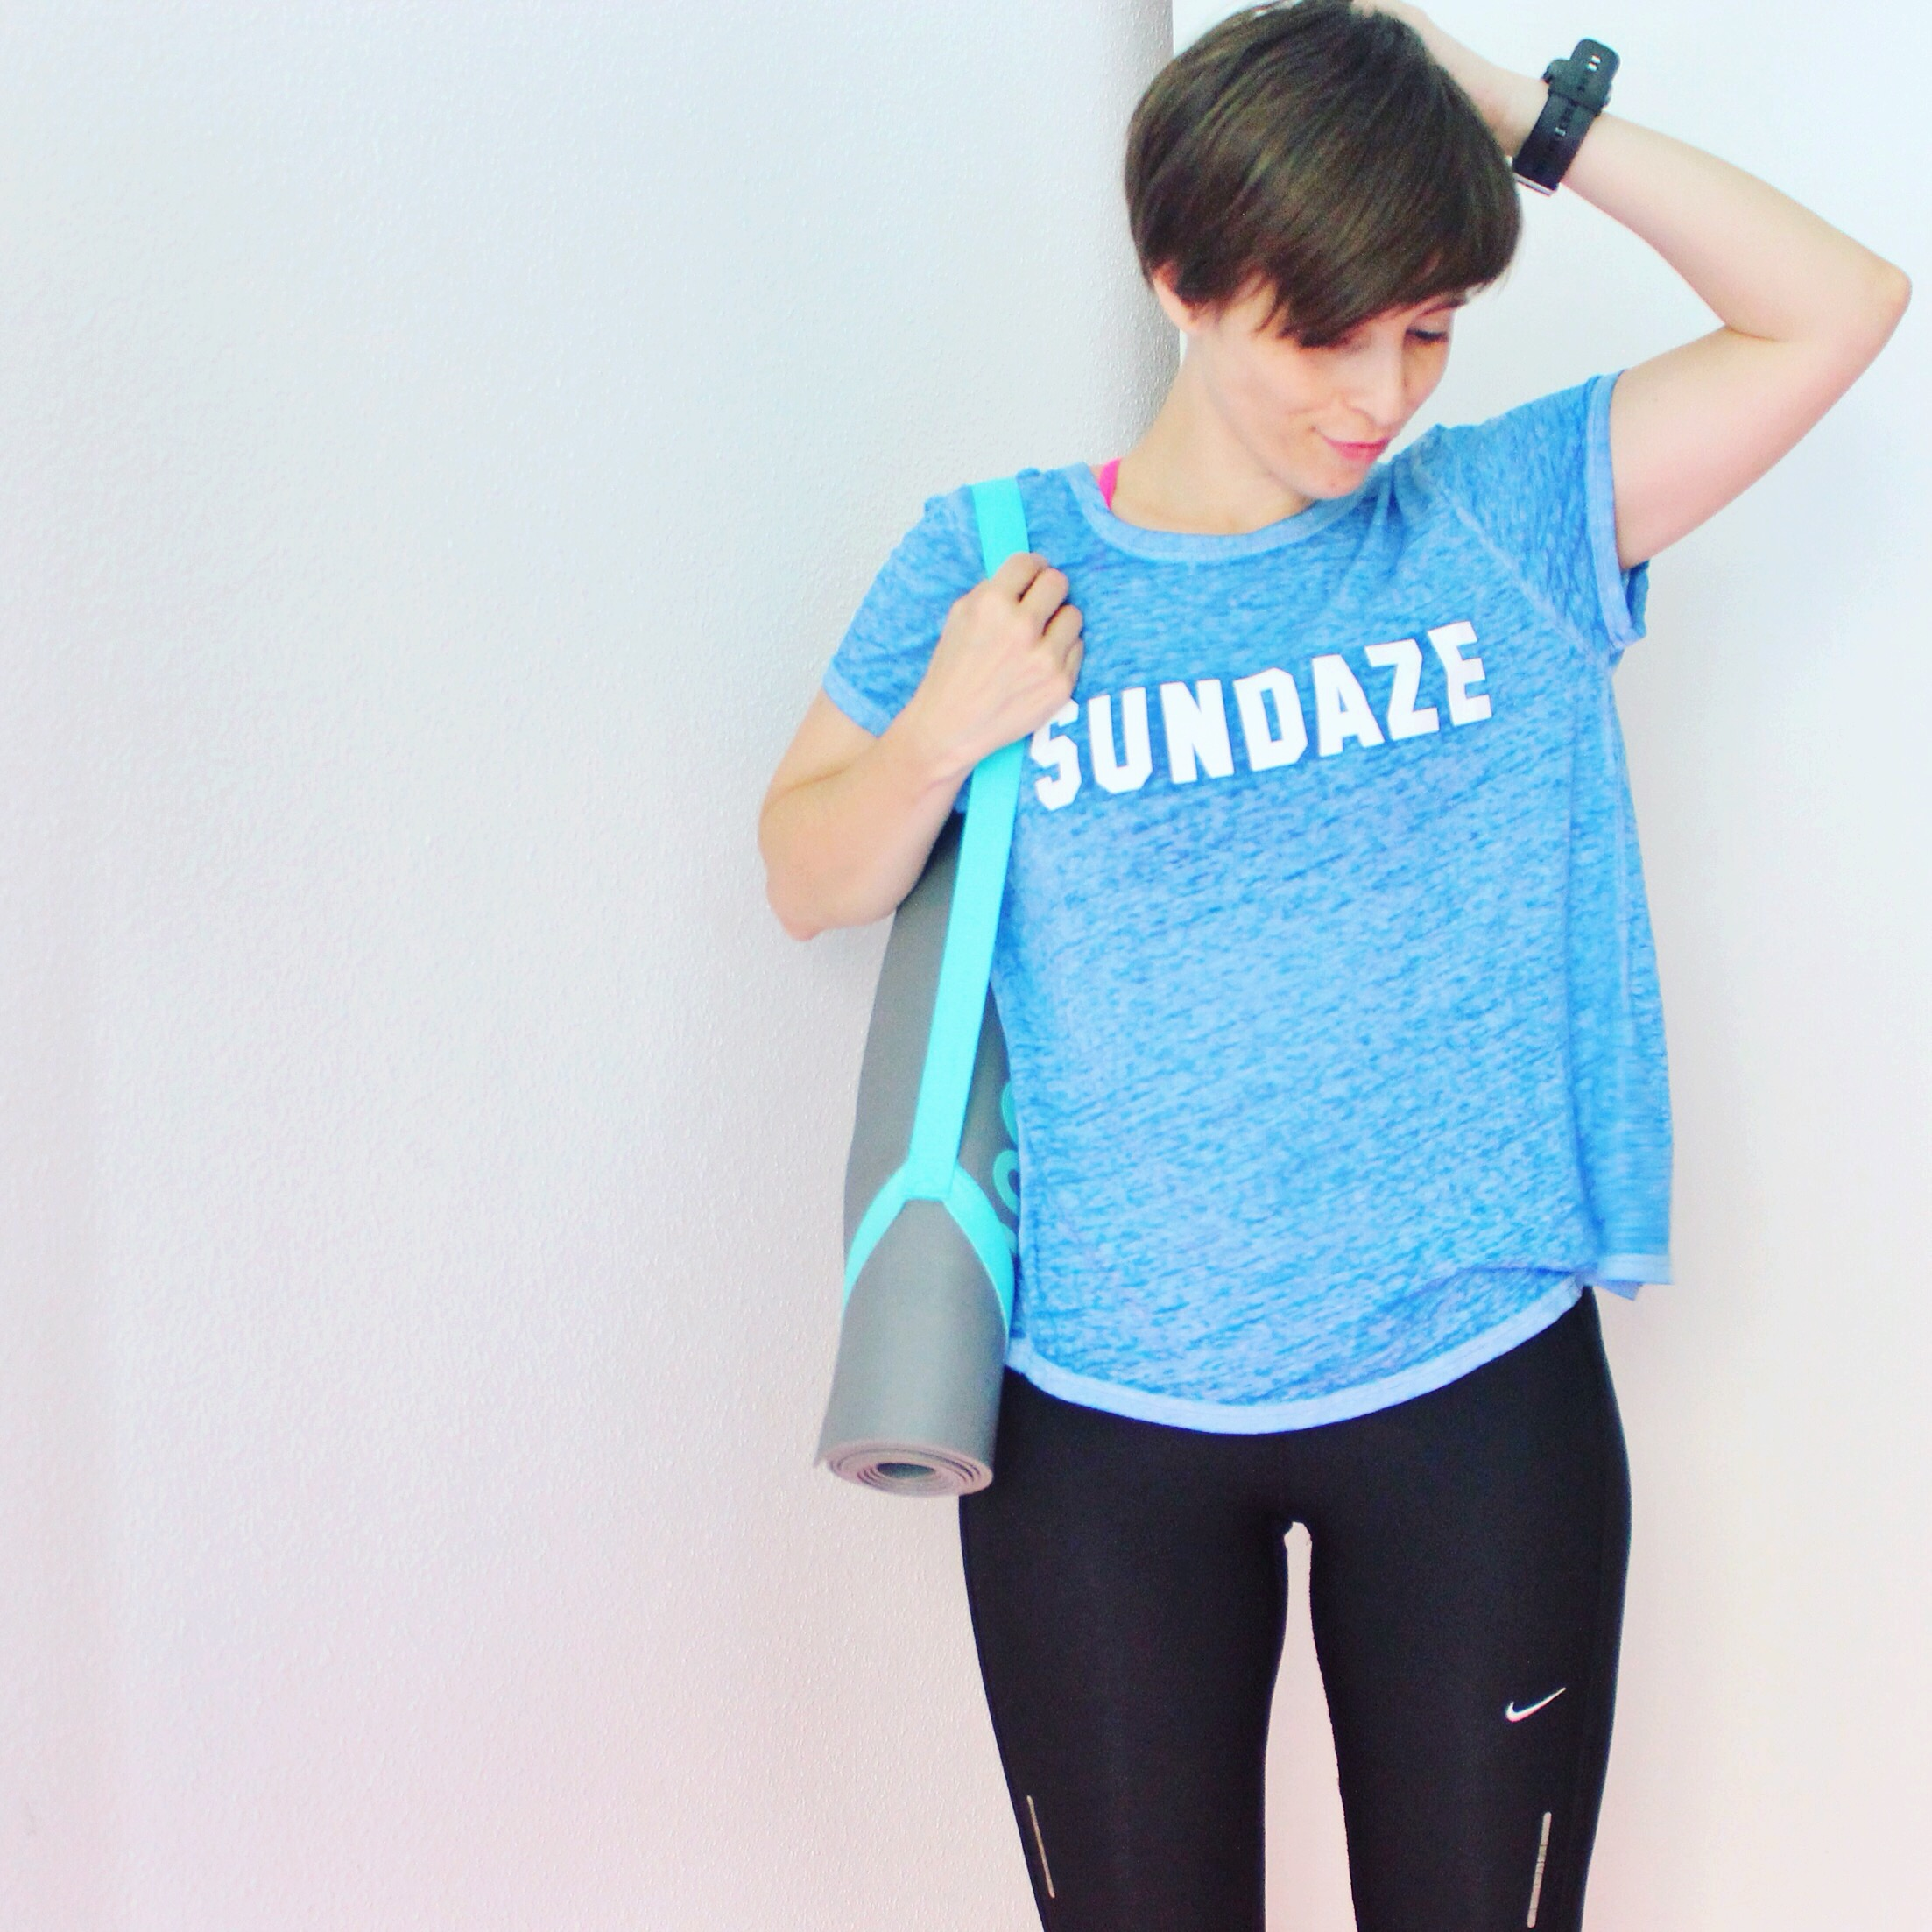 Fitness outfit nike forever21 shein hm